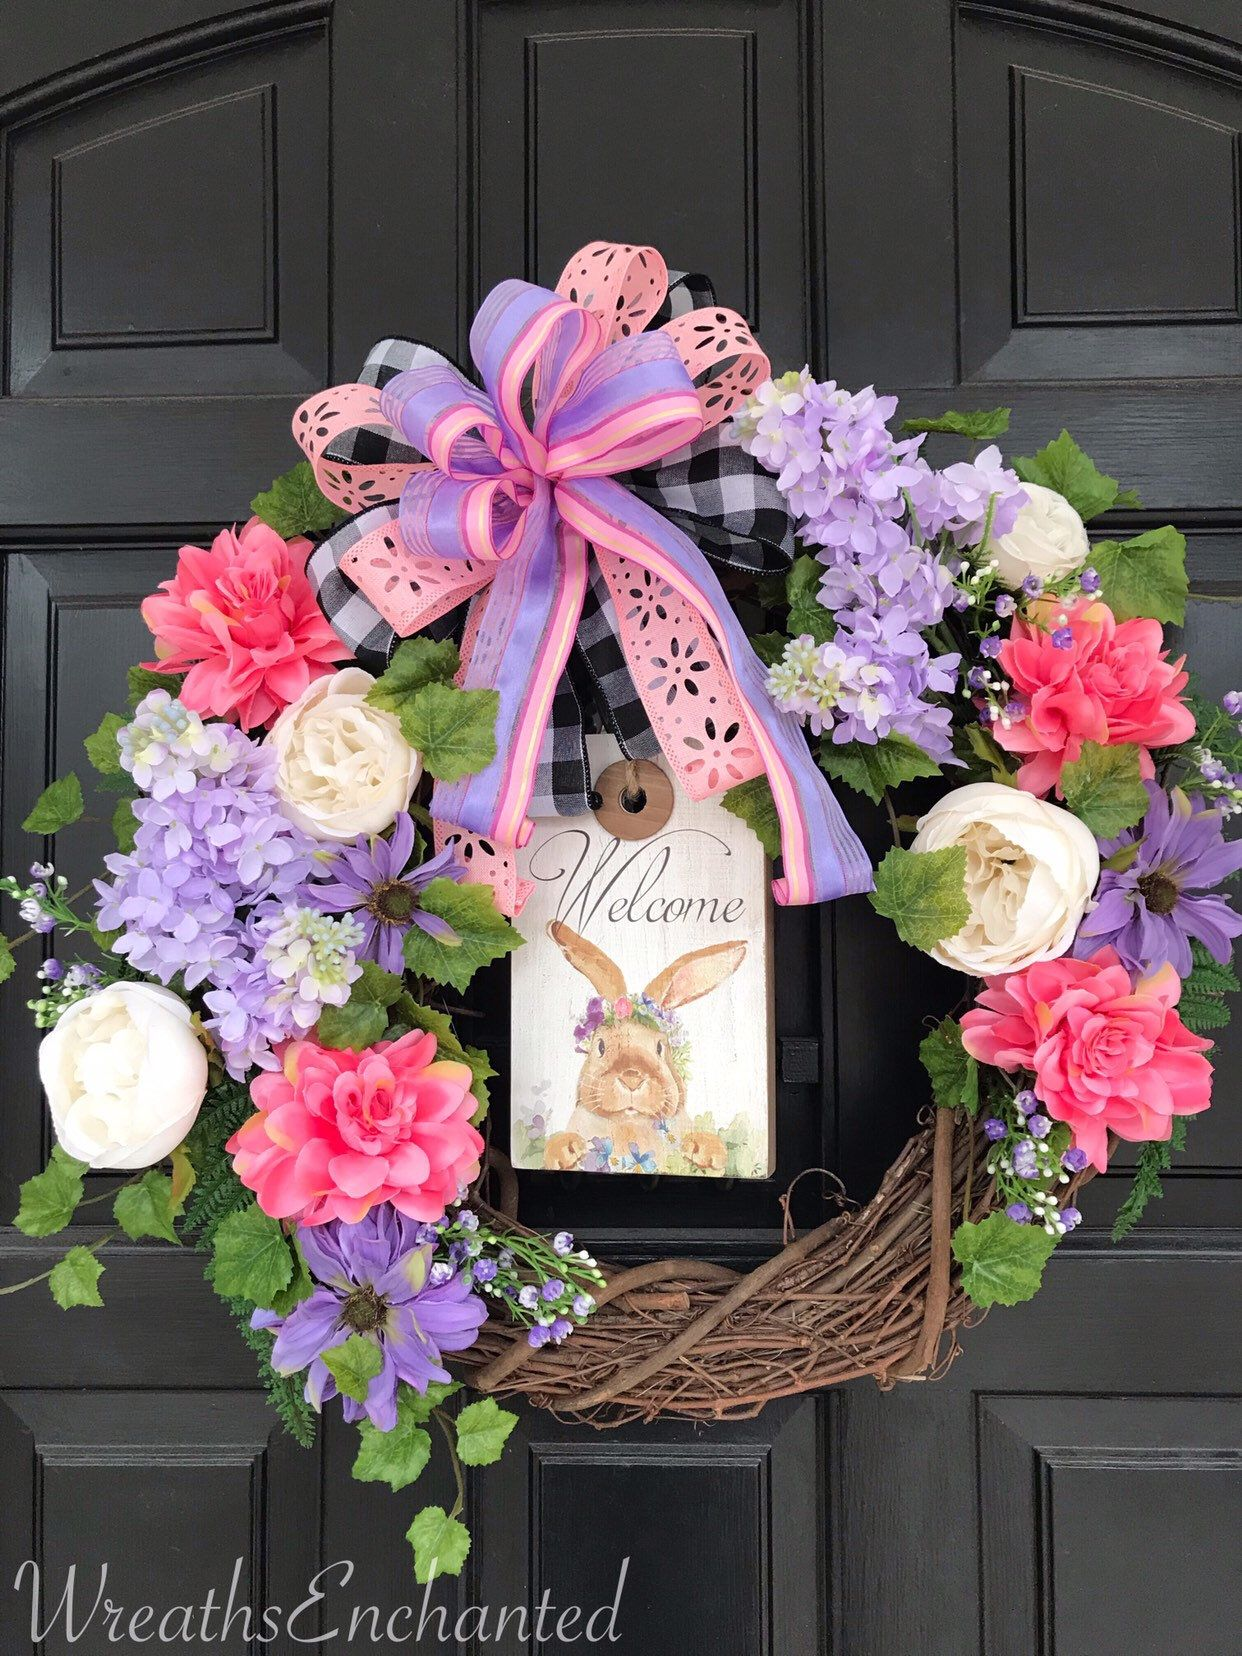 Easter Wreath Front Door Spring Wreath Bunny Welcome Easter Decor Pink Lavender Lilac Rose Floral Wreath Free Shipping In 2020 Spring Wreath Easter Wreaths Wreaths